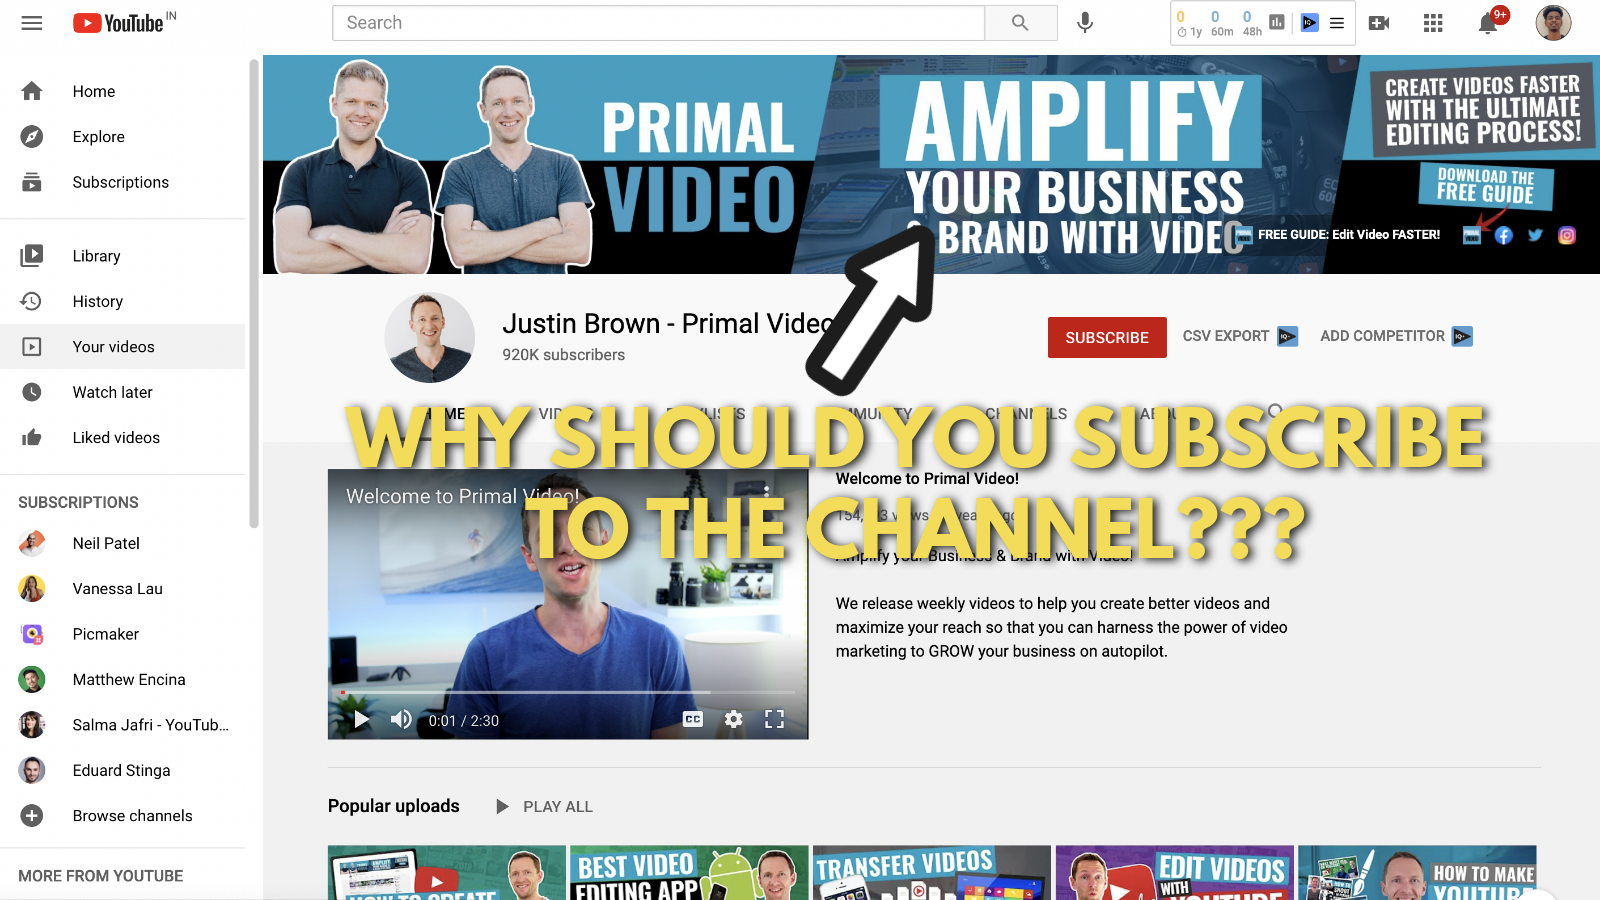 A screenshot of Primal video's YouTube channel 6